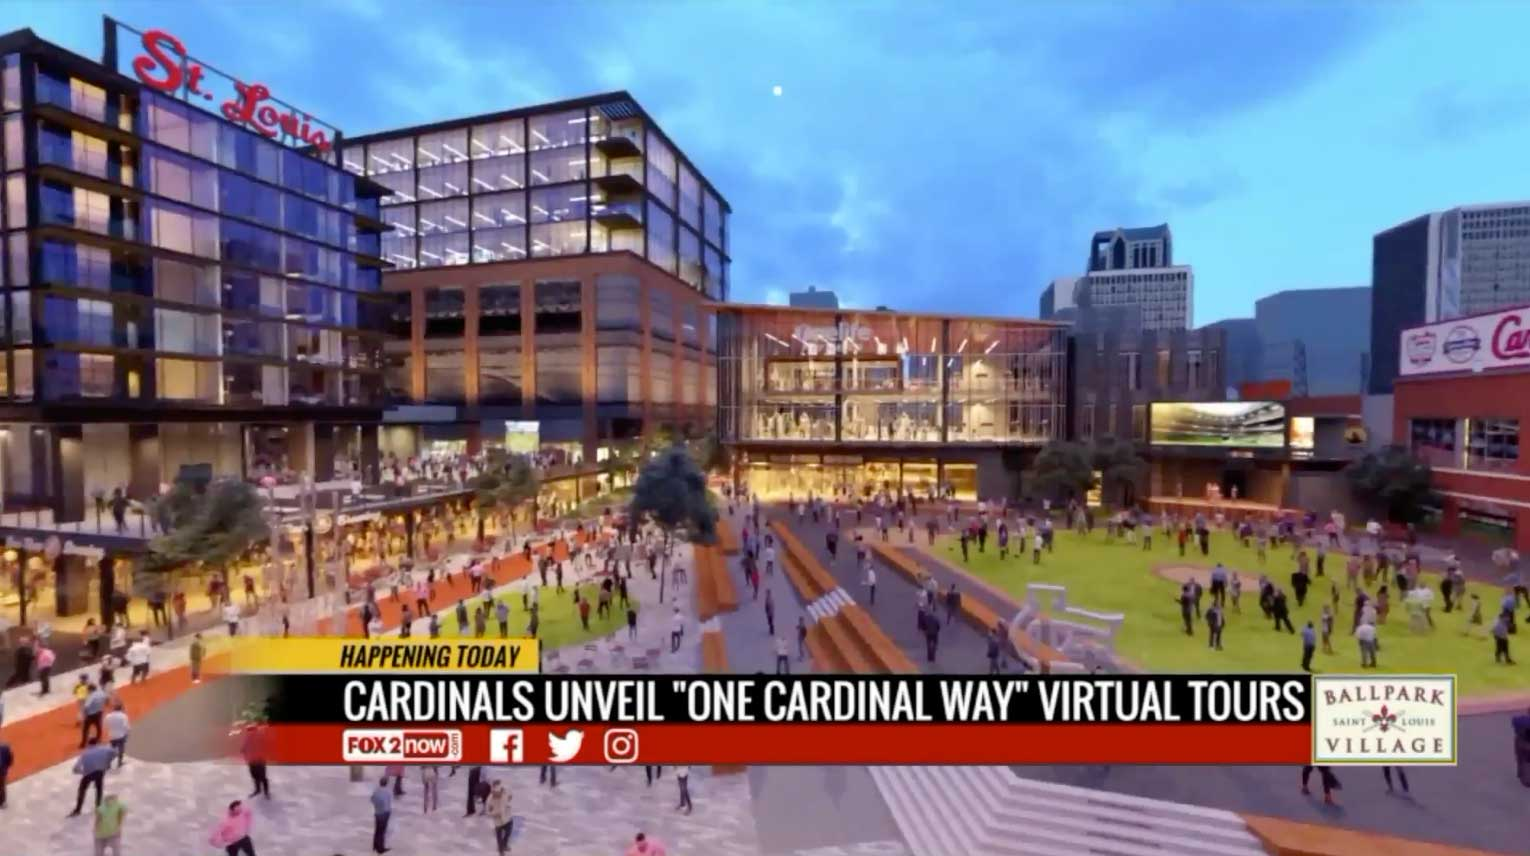 Take a virtual tour of Ballpark Village's $260 million expansion